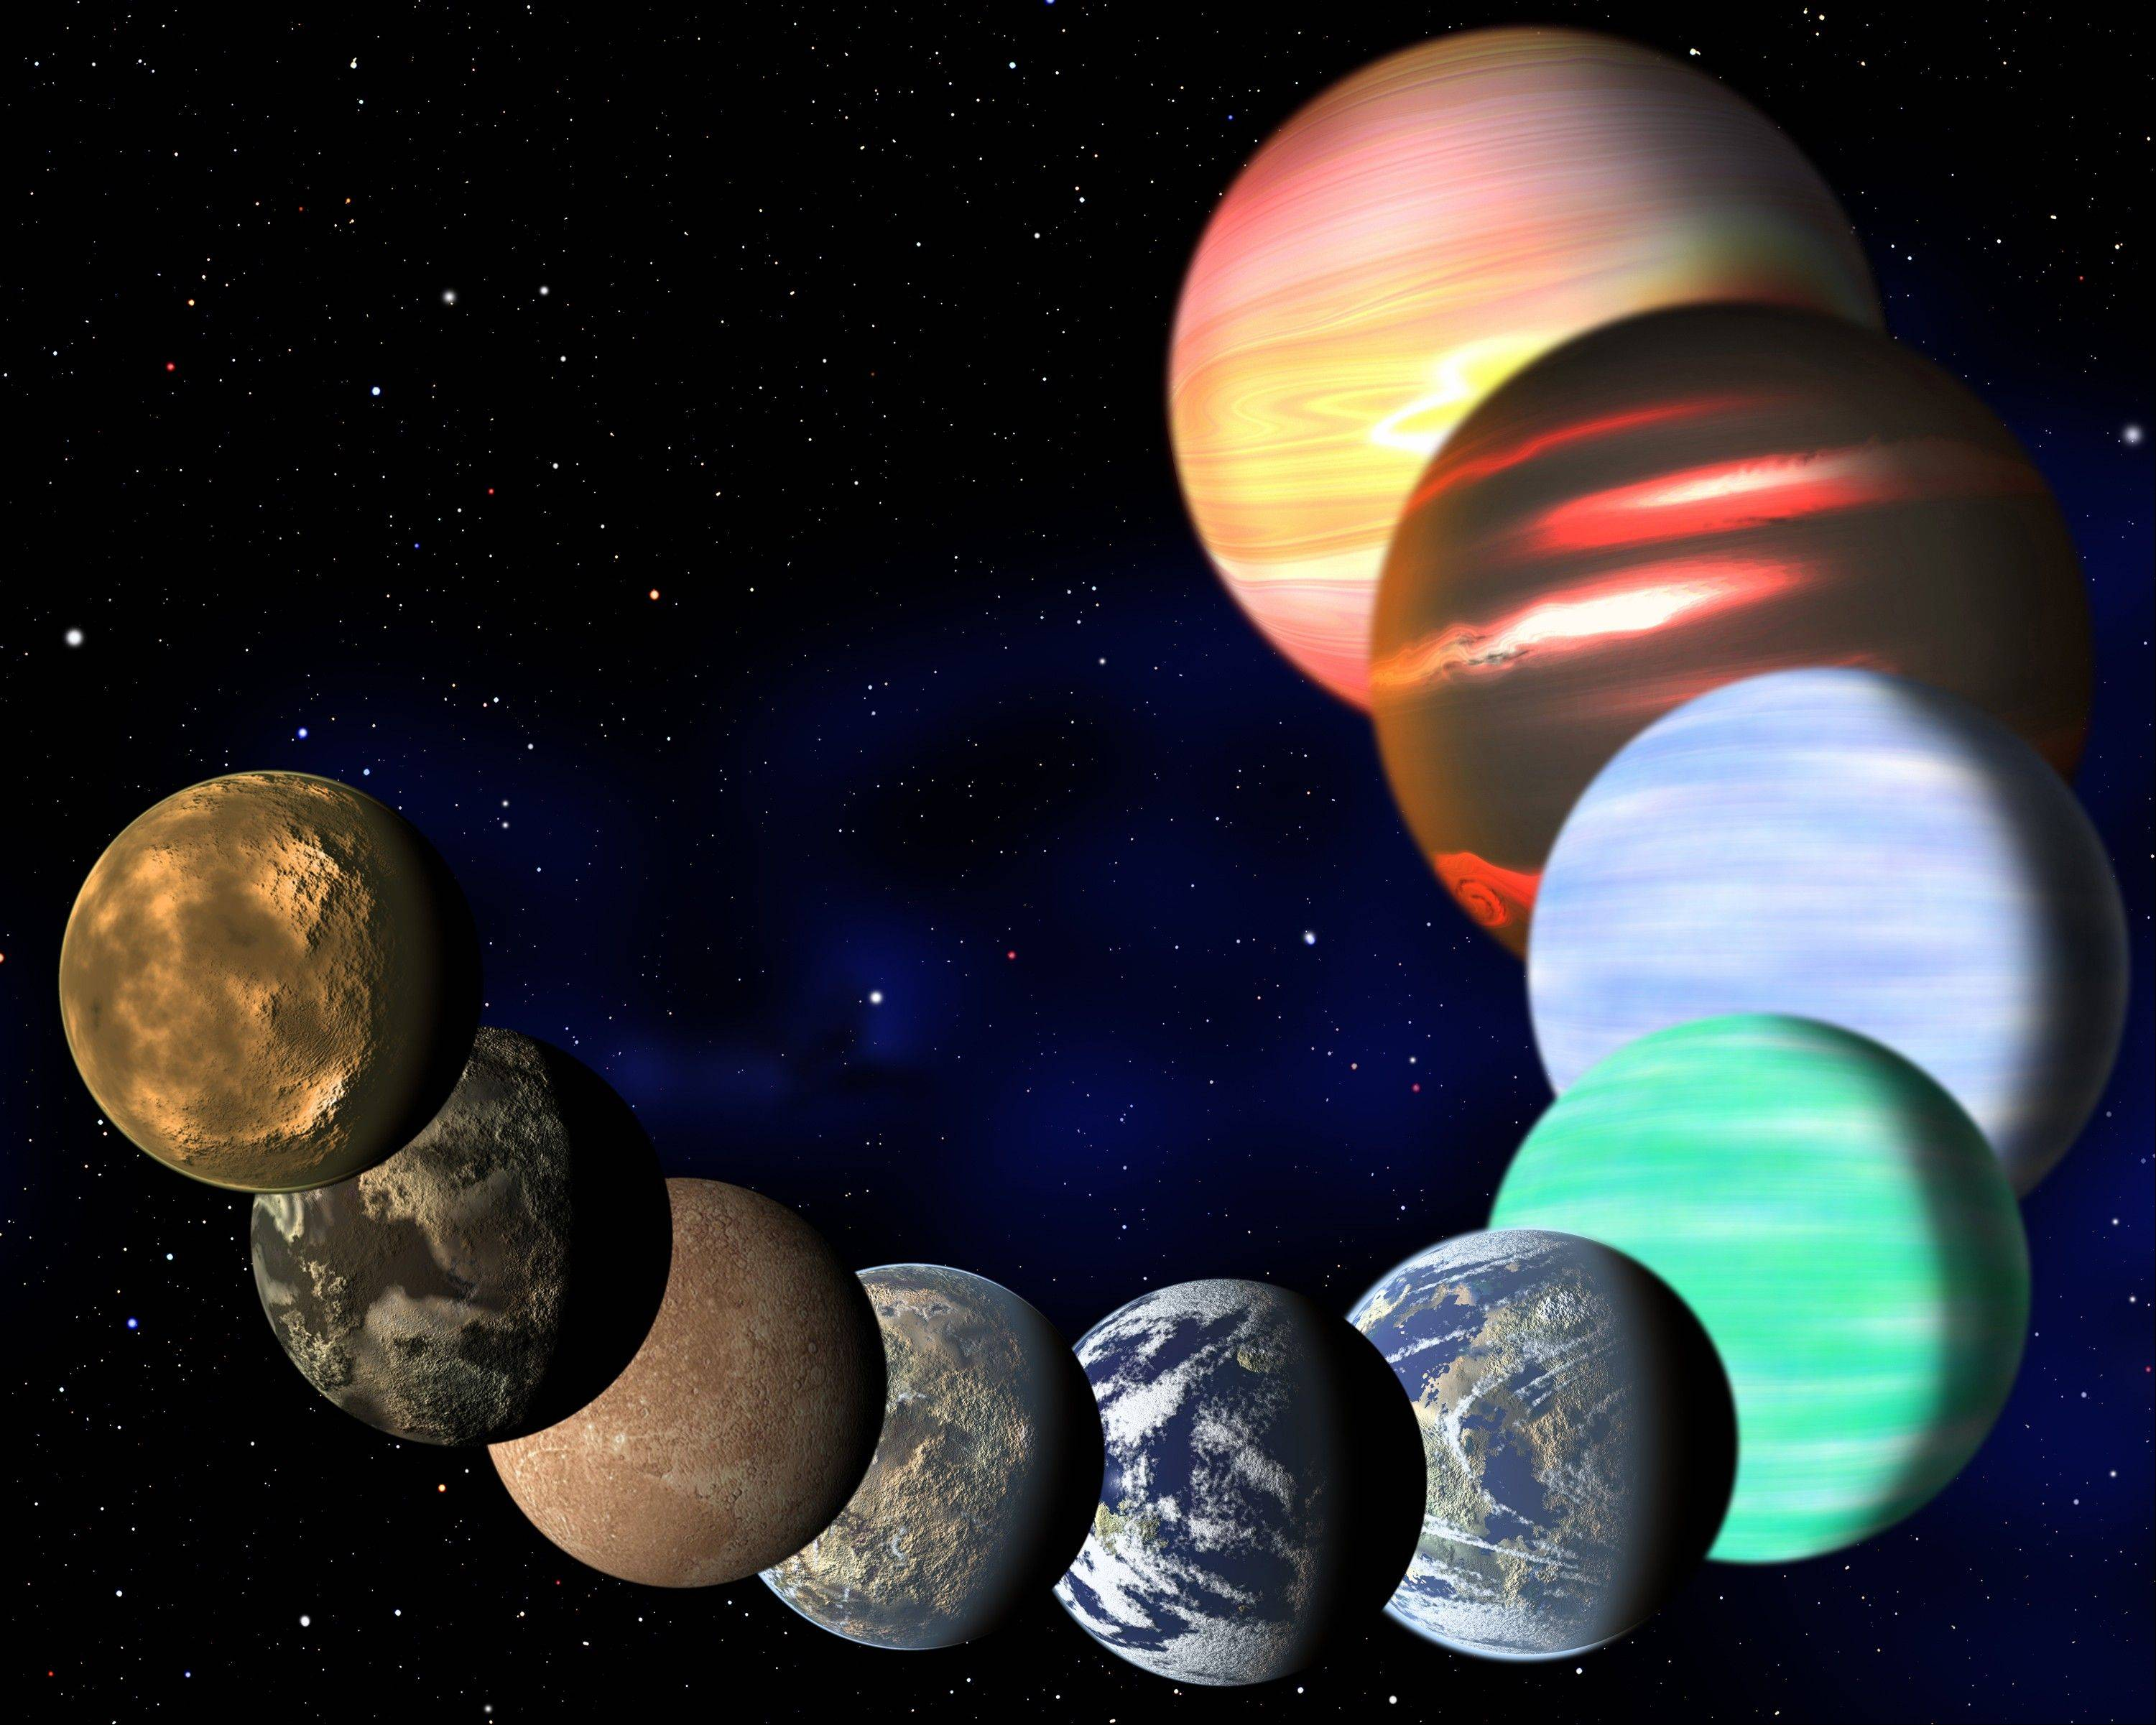 ASSOCIATED PRESS This artist rendering shows the different types of planets in our Milky Way galaxy detected by NASA�s Kepler spacecraft. A new analysis of Kepler data found there are at least 17 billion planets the size of Earth.